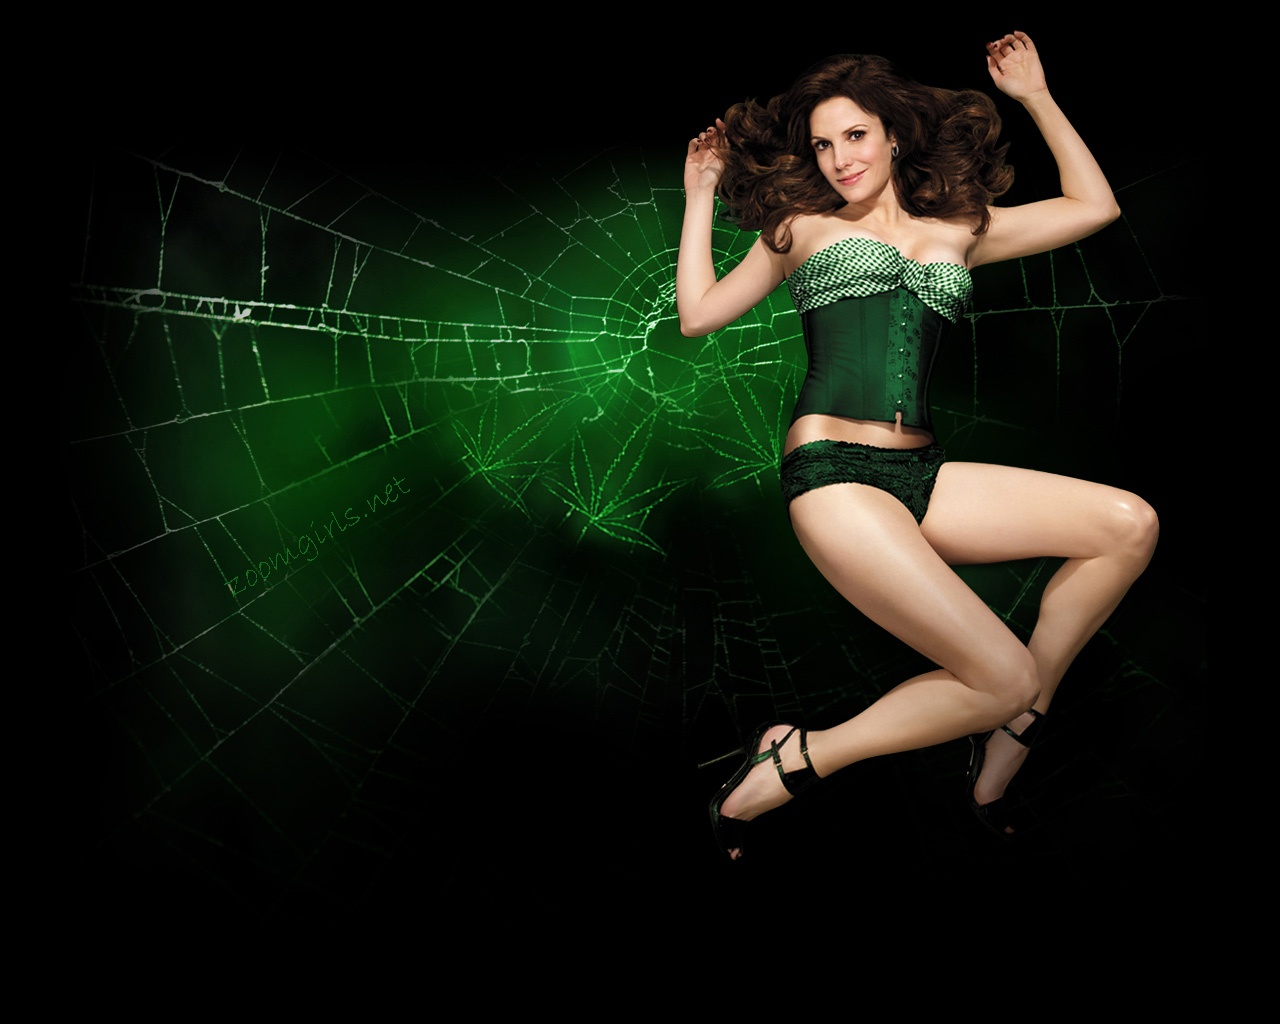 1280x1024 - Mary-Louise Parker Wallpapers 27